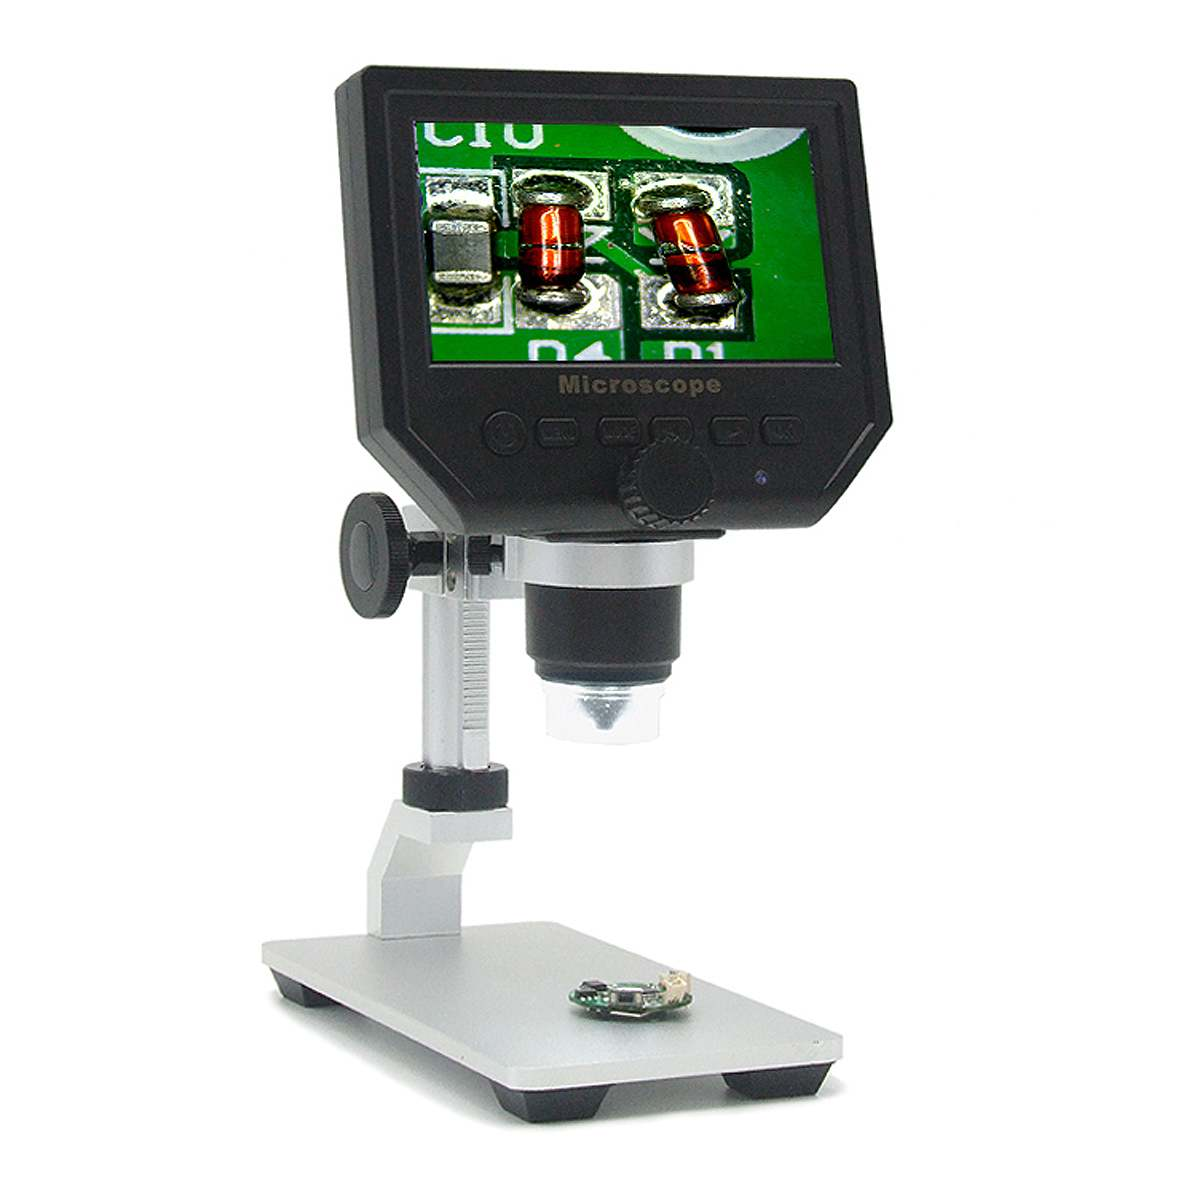 Upgrade Version Mustool 3.6MP G600 Digital 600X 4.3inch HD LCD Display Microscope Continuous Magnifier With Aluminum Alloy Stand